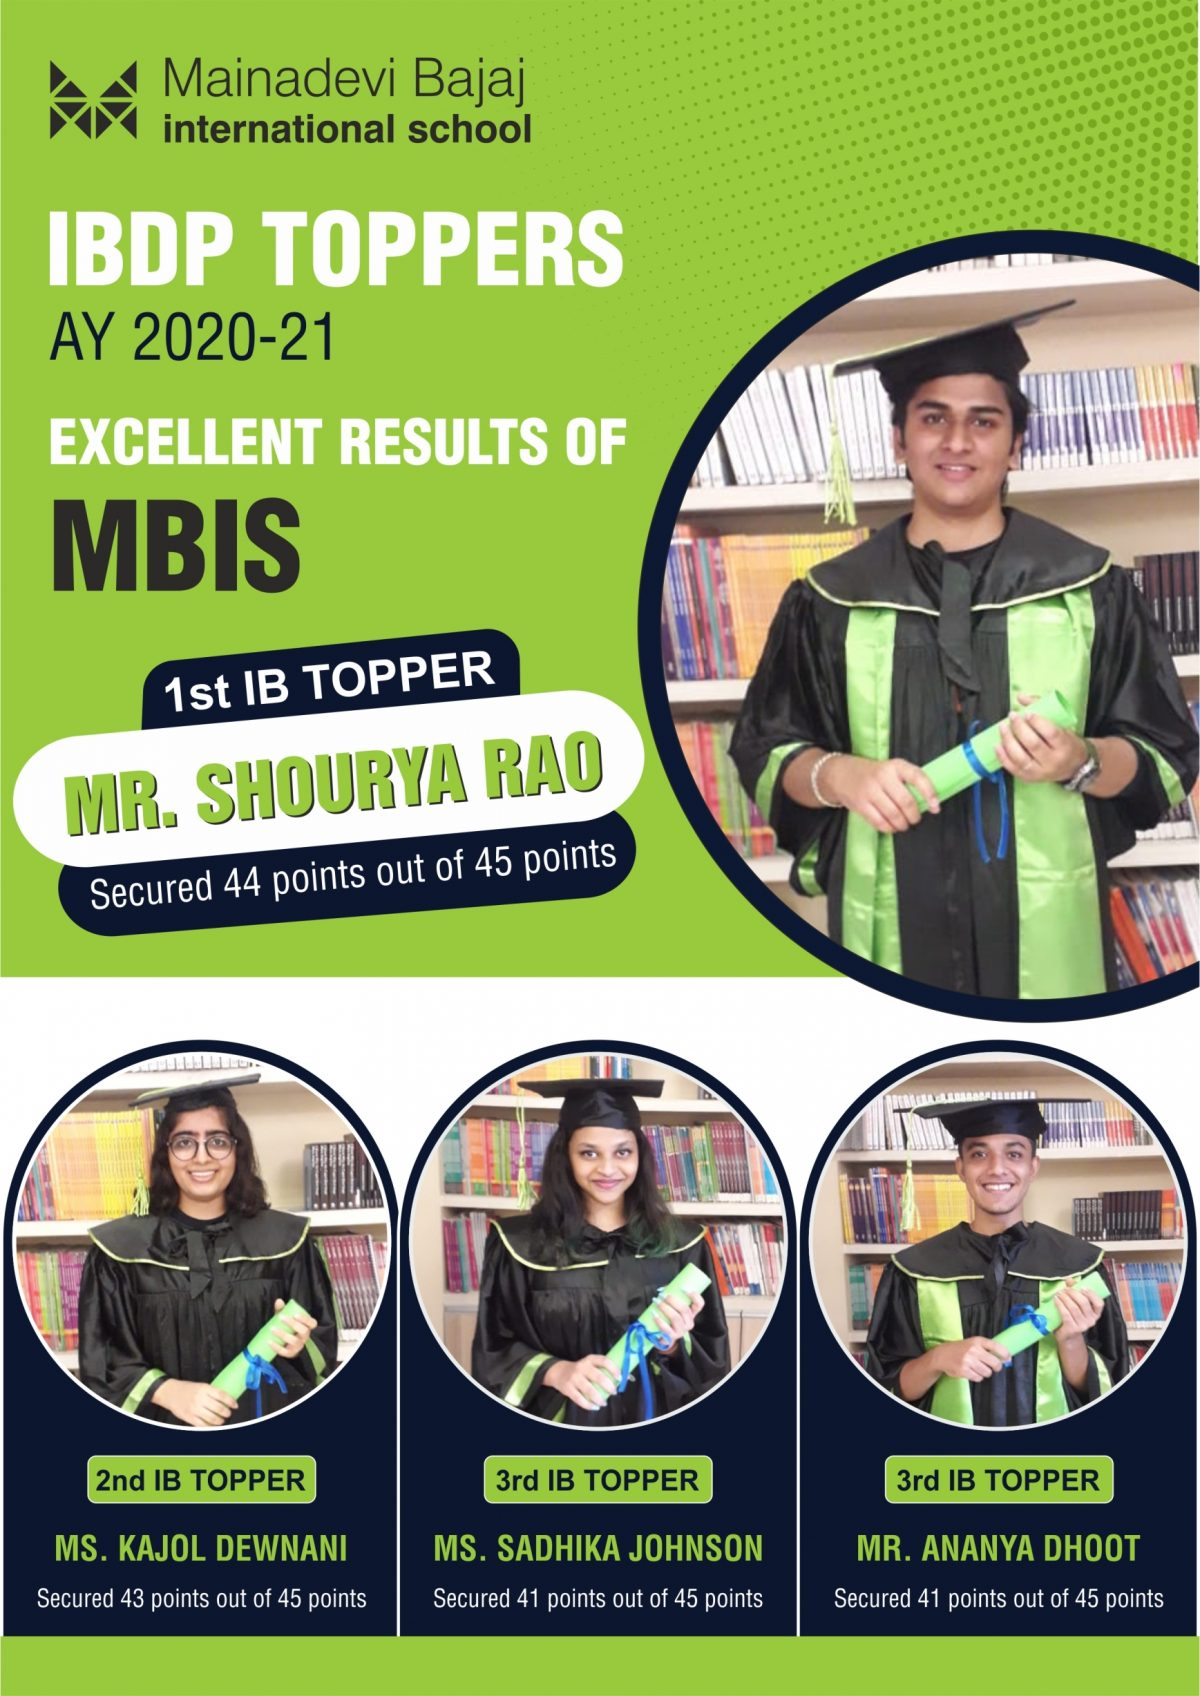 MBIS IBDP Toppers AY 2020-21 (1)